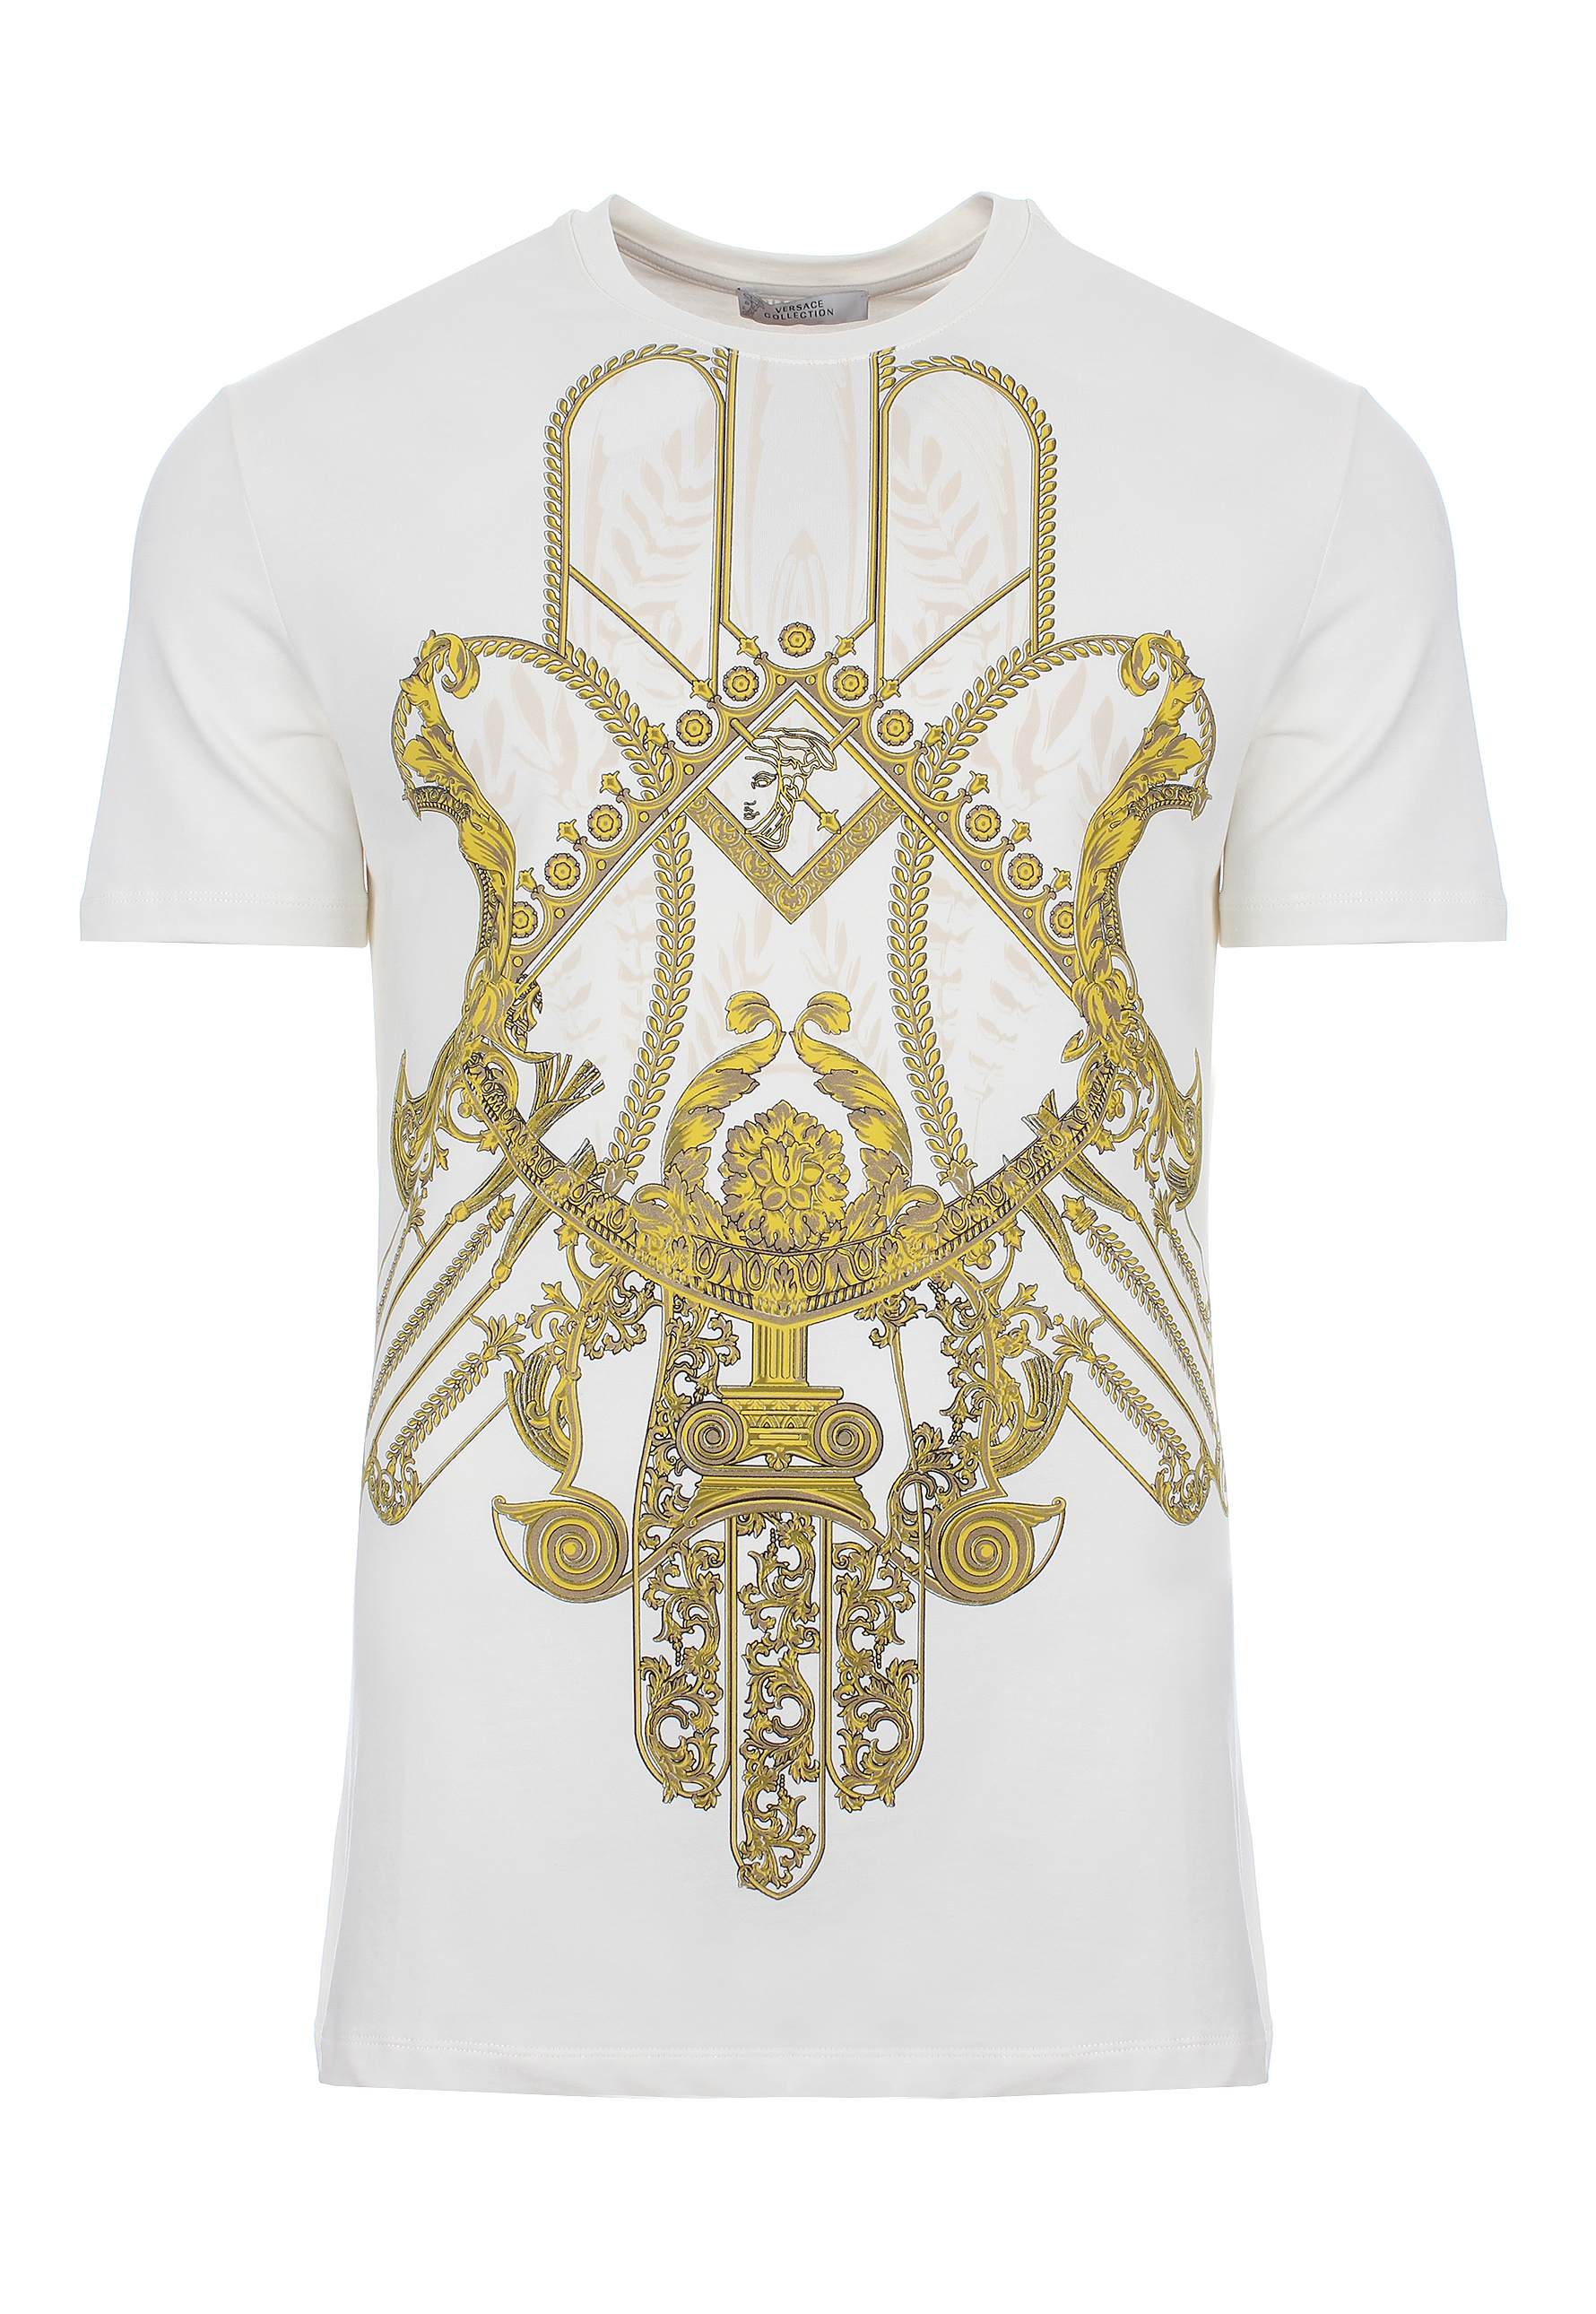 lyst versace hamsa hand print t shirt off white gold in metallic for men. Black Bedroom Furniture Sets. Home Design Ideas